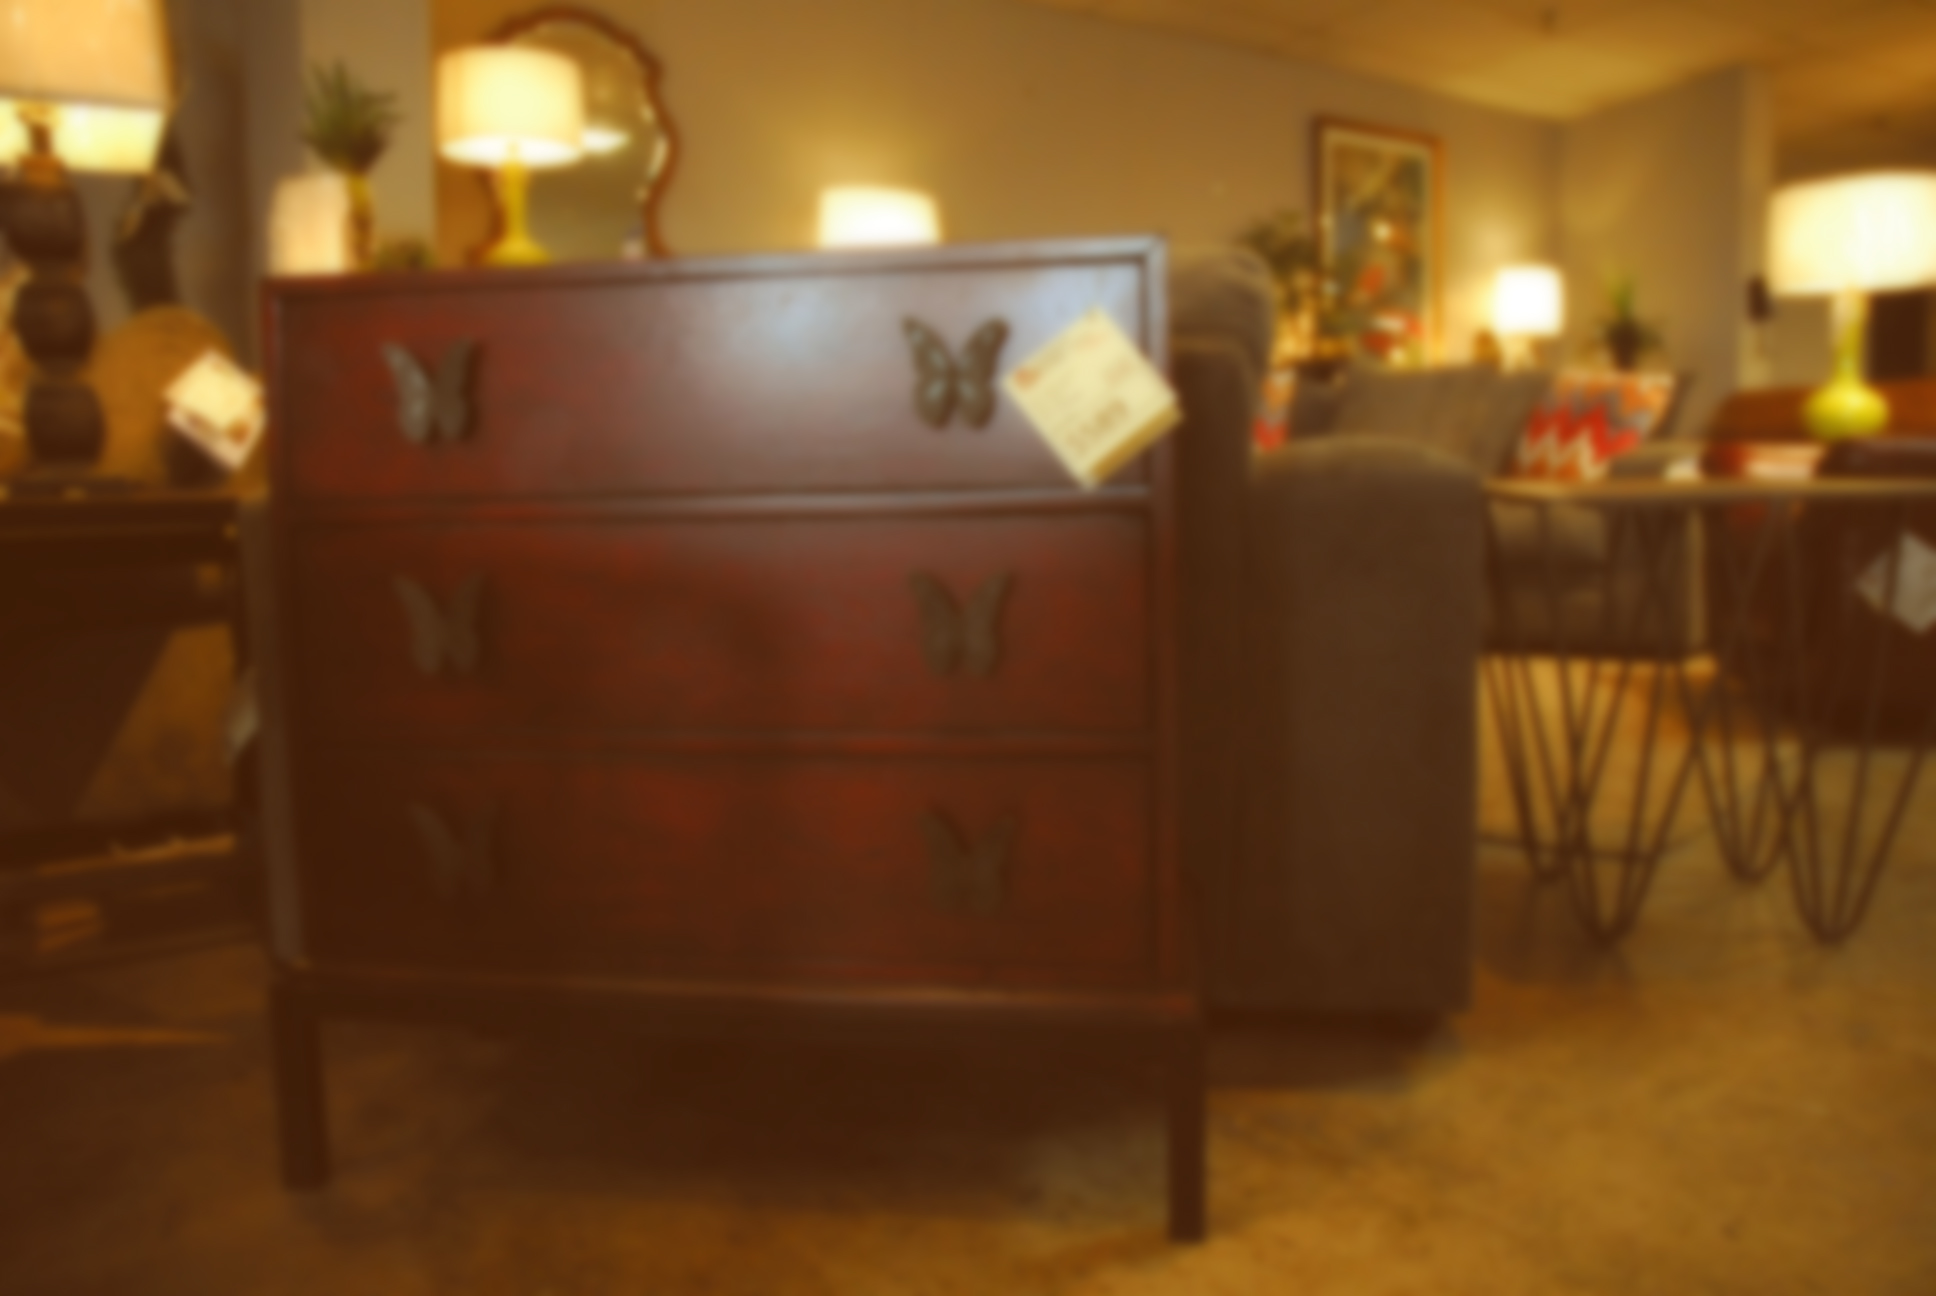 Kurlancheek Home Furnishings